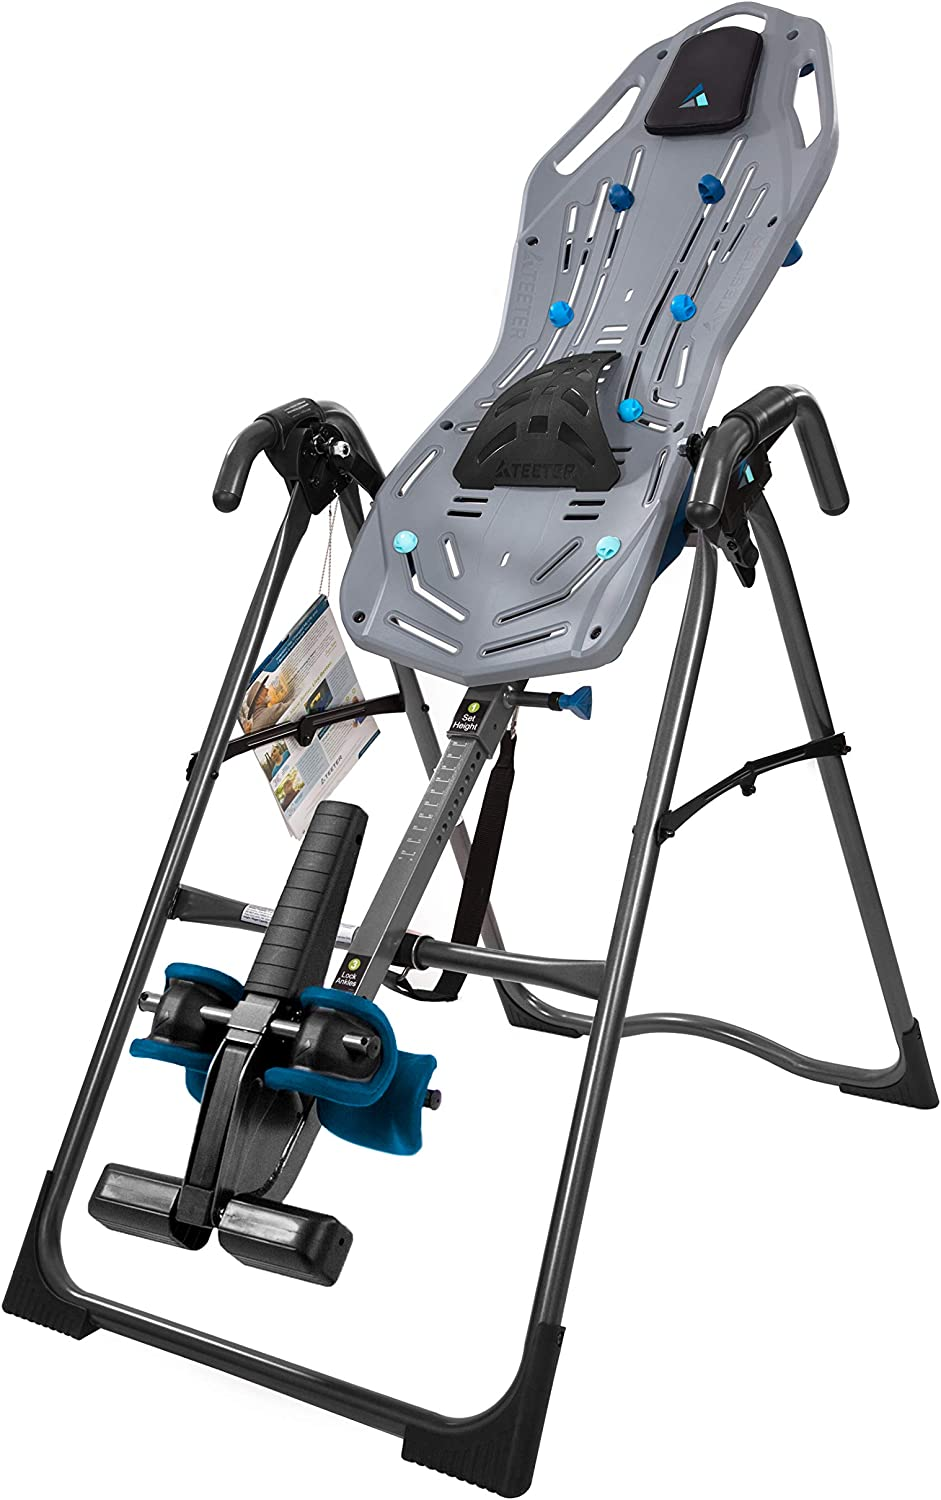 Teeter FitSpine X2 Inversion Table, 2019 Model, Extended Ankle Lock Handle, Back Pain Relief Kit, FDA-Registered